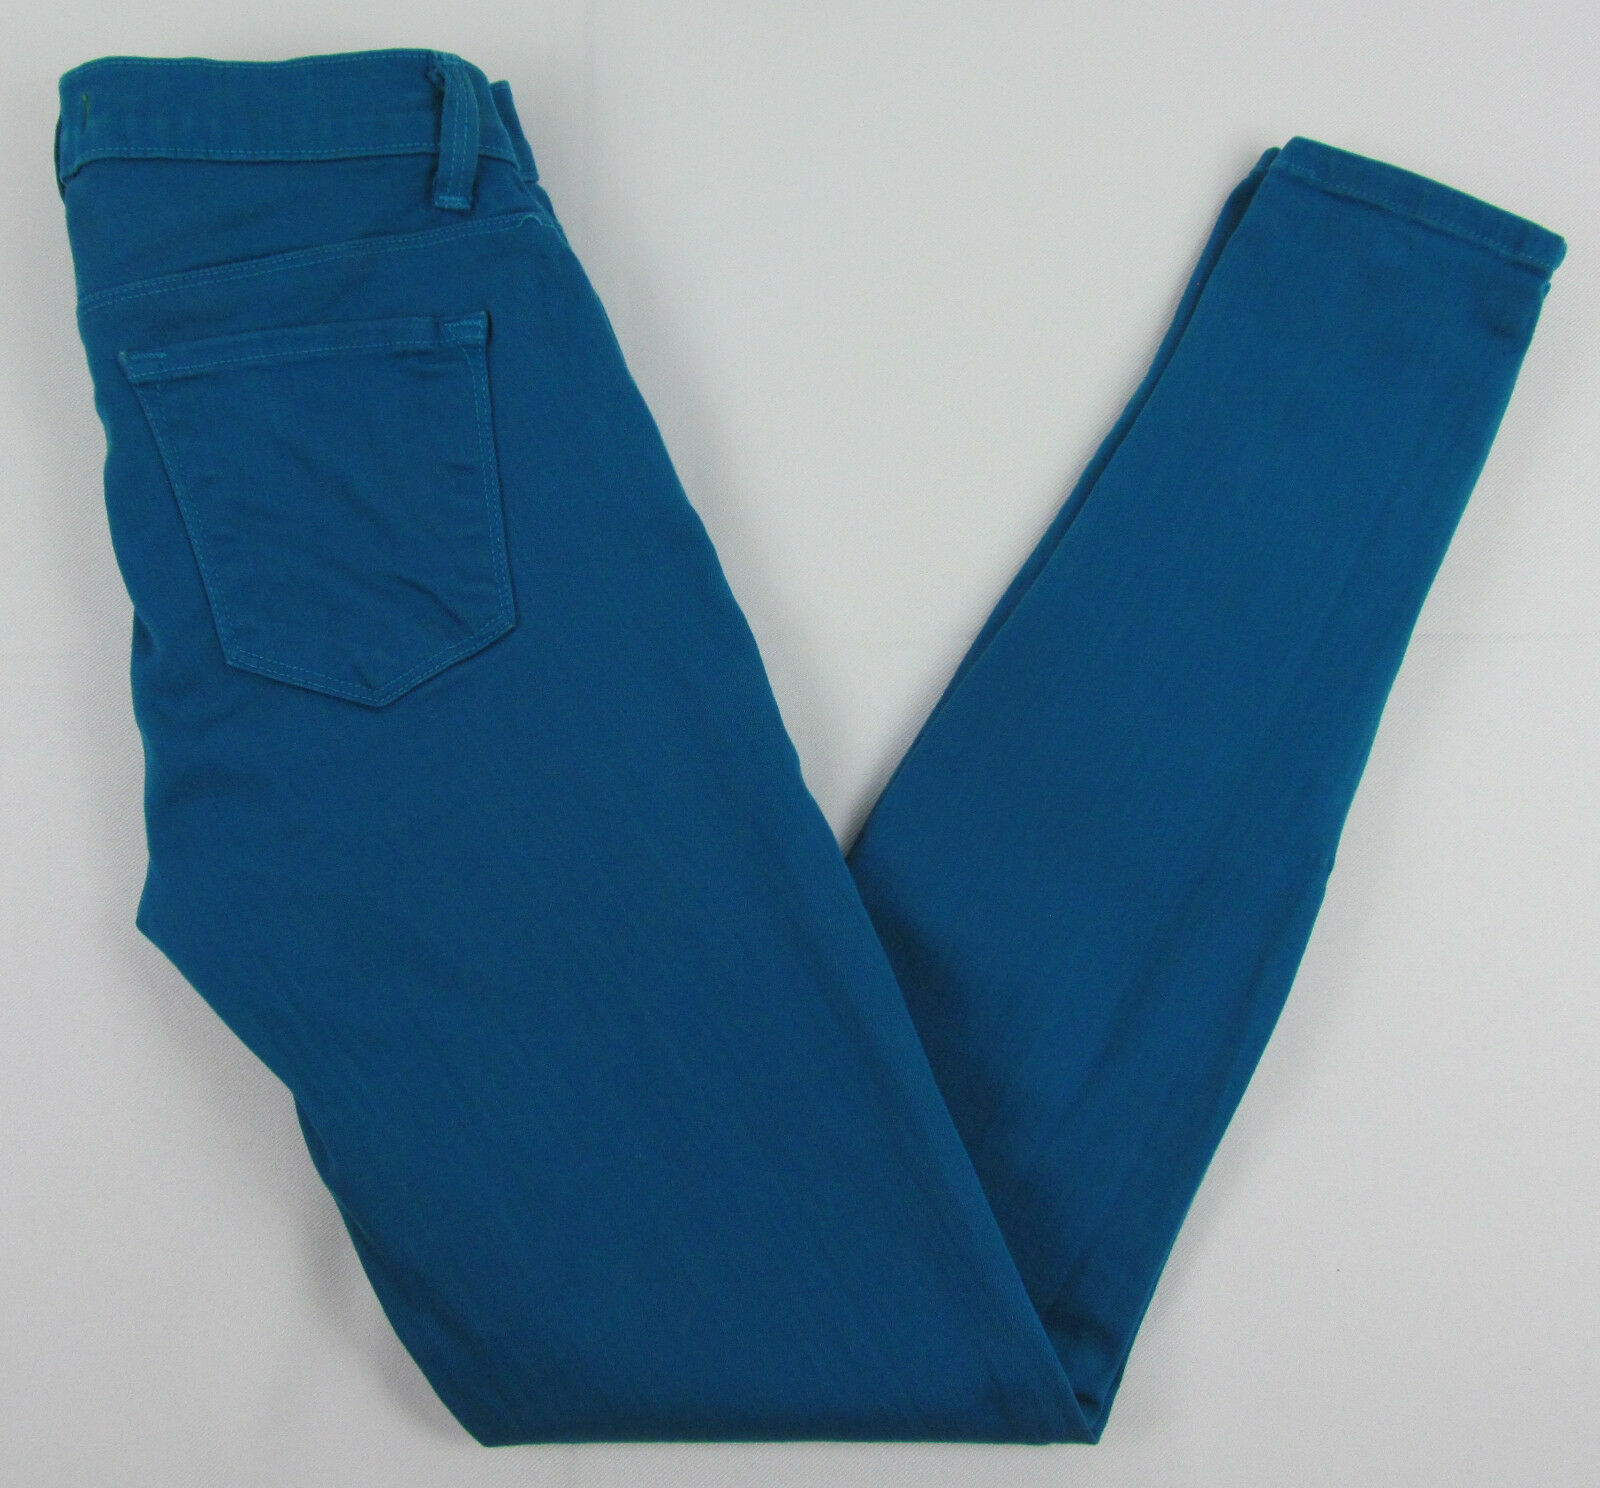 J Brand jeans Azure Ankle Skinny Zipper cuffs USA Made Teal Womens Size 25